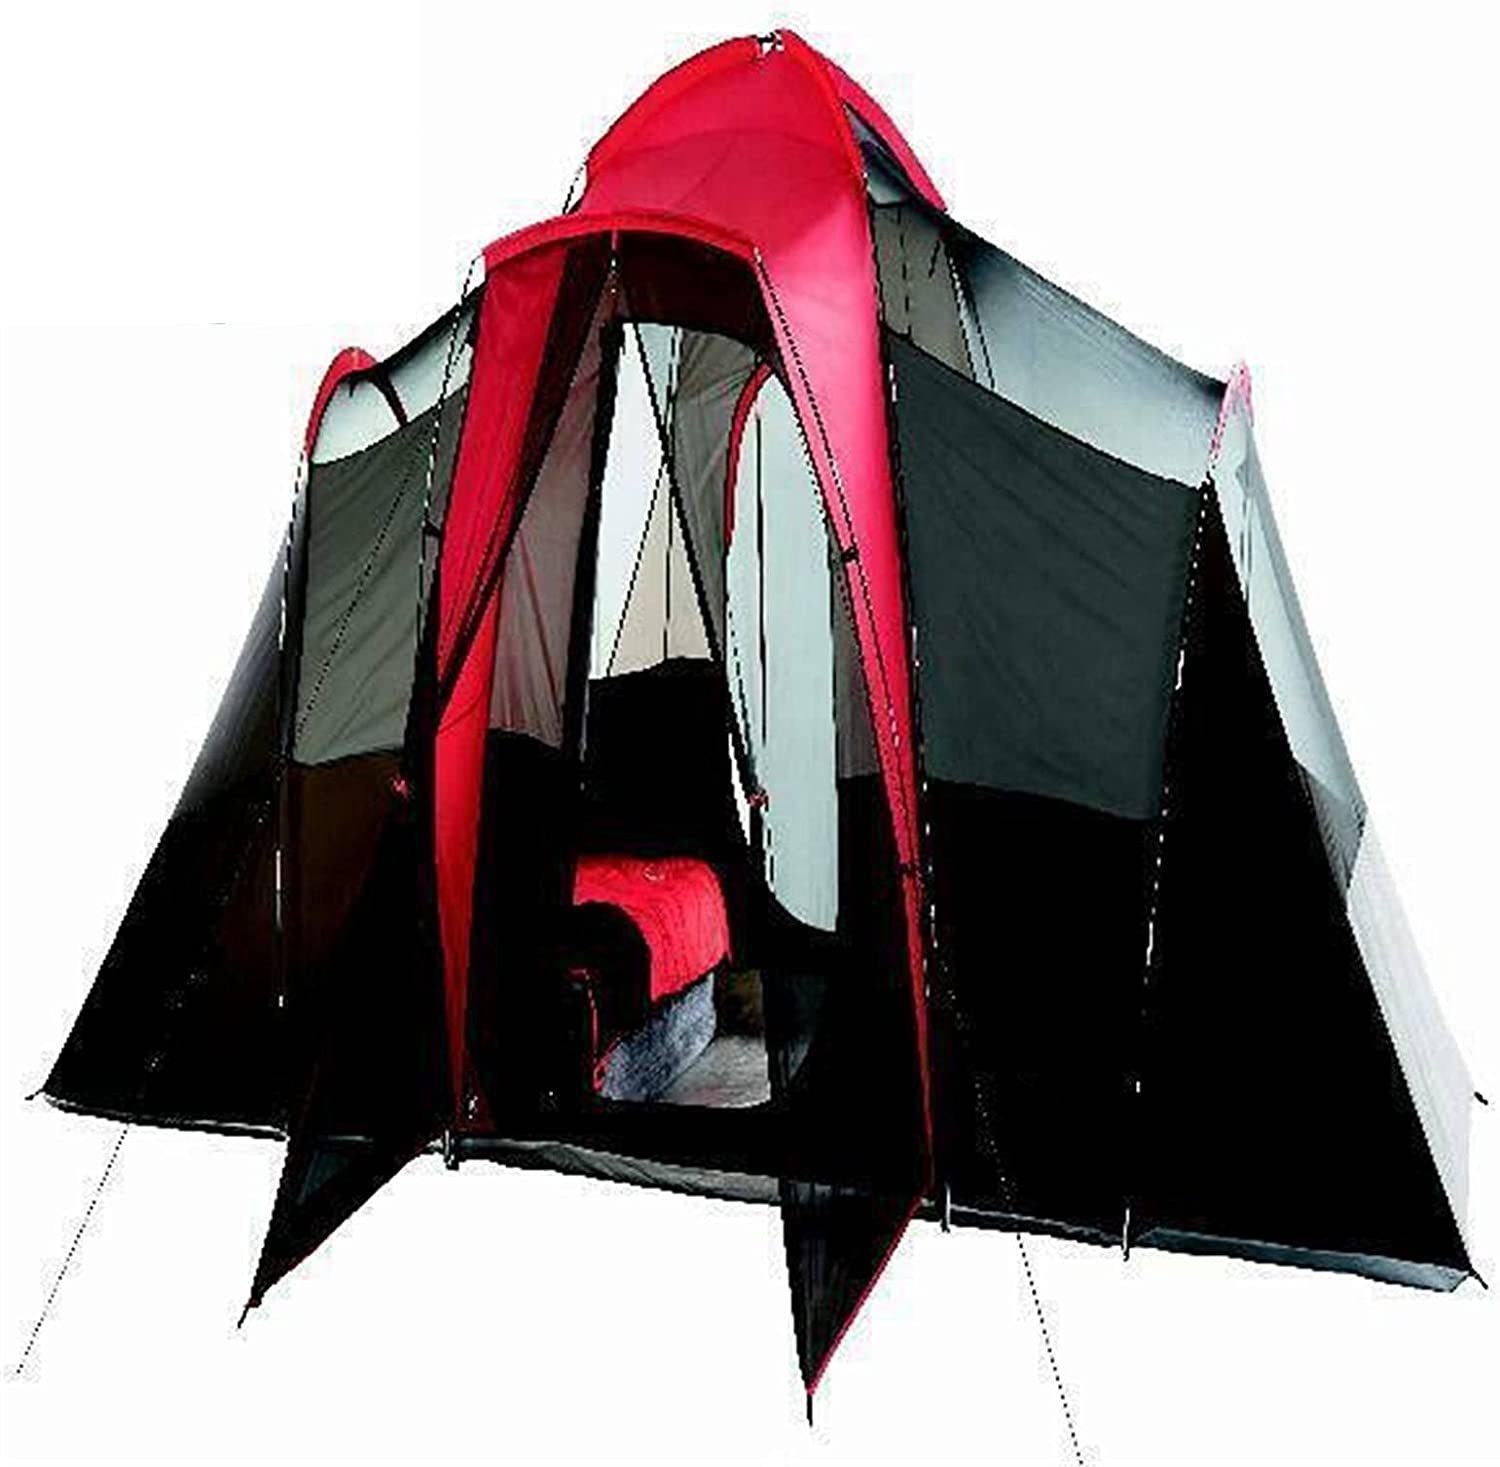 Max 78% OFF ZJJZJJ 2021 Challenge the lowest price Waterproof 10-Person Portable Tent Large Outd Family